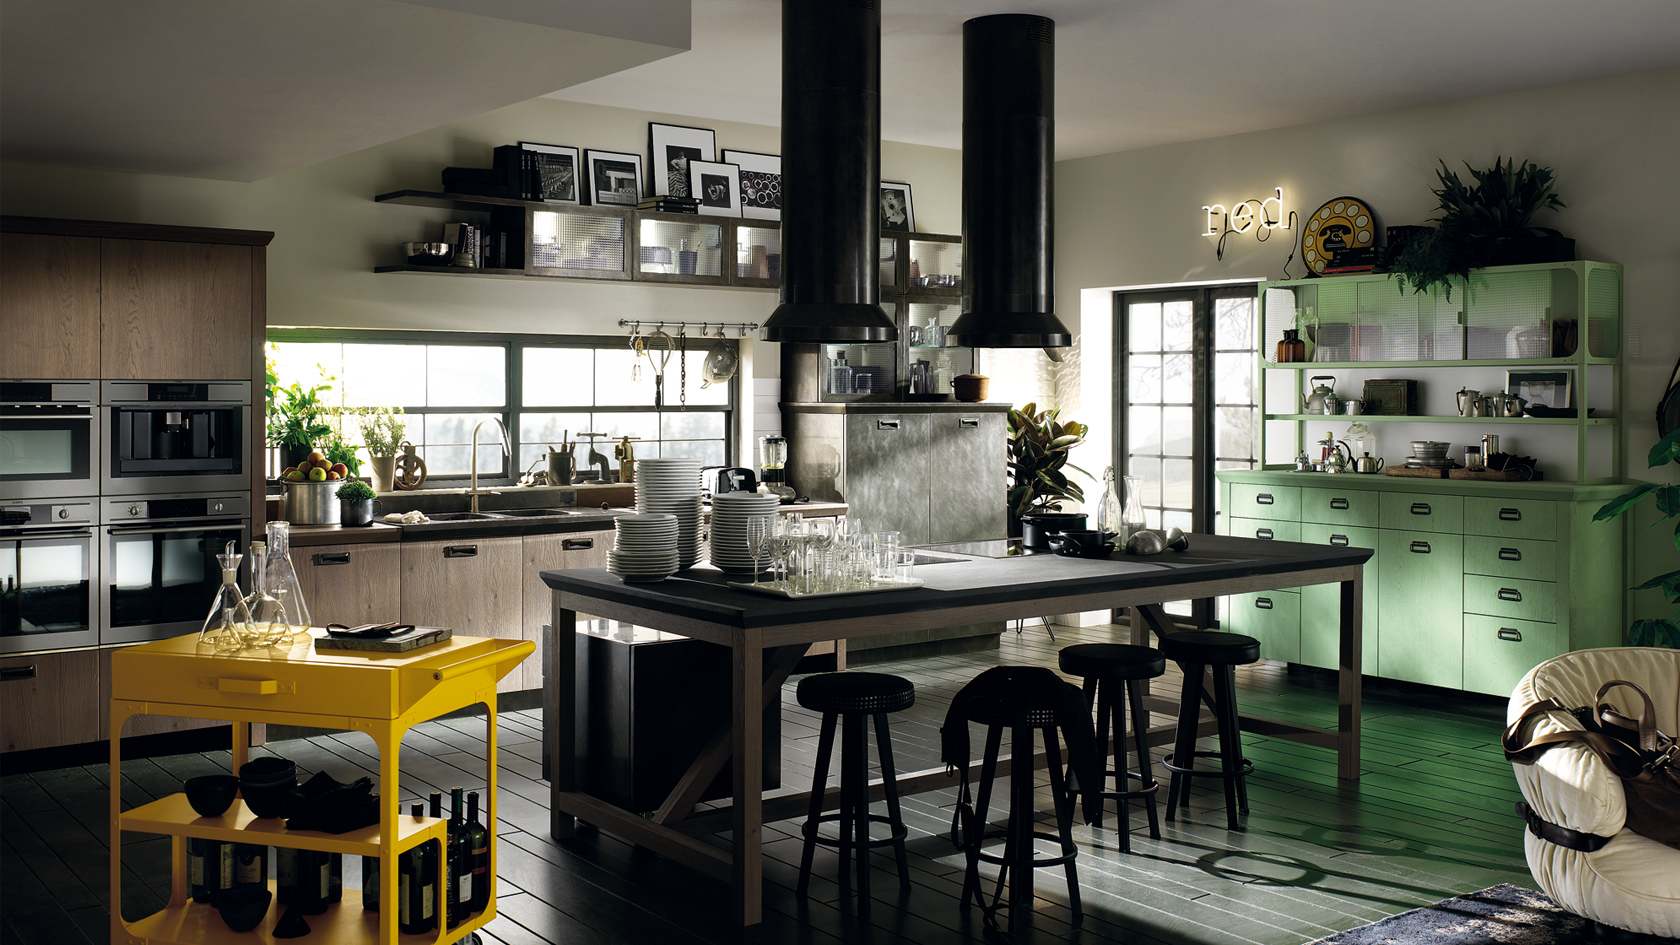 diesel scavolini progetto cucine social 3 design mon amour. Black Bedroom Furniture Sets. Home Design Ideas